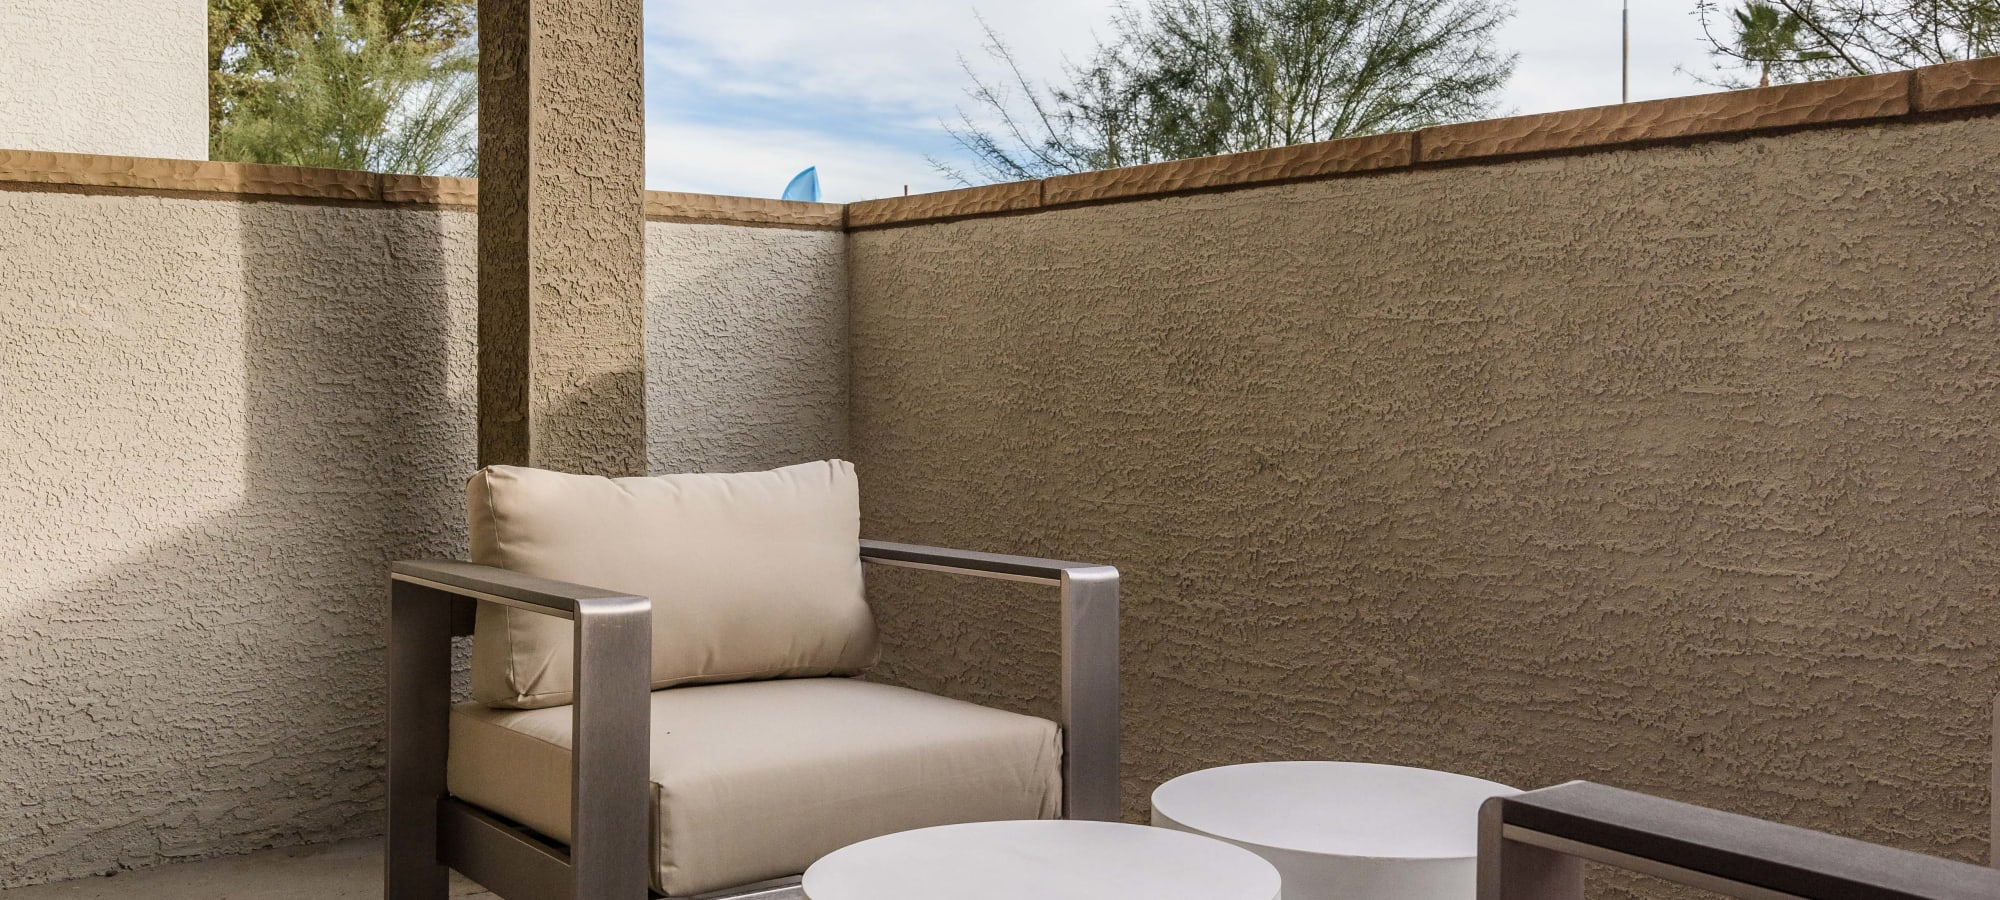 Private terrace at Morrison Chandler in Chandler, Arizona